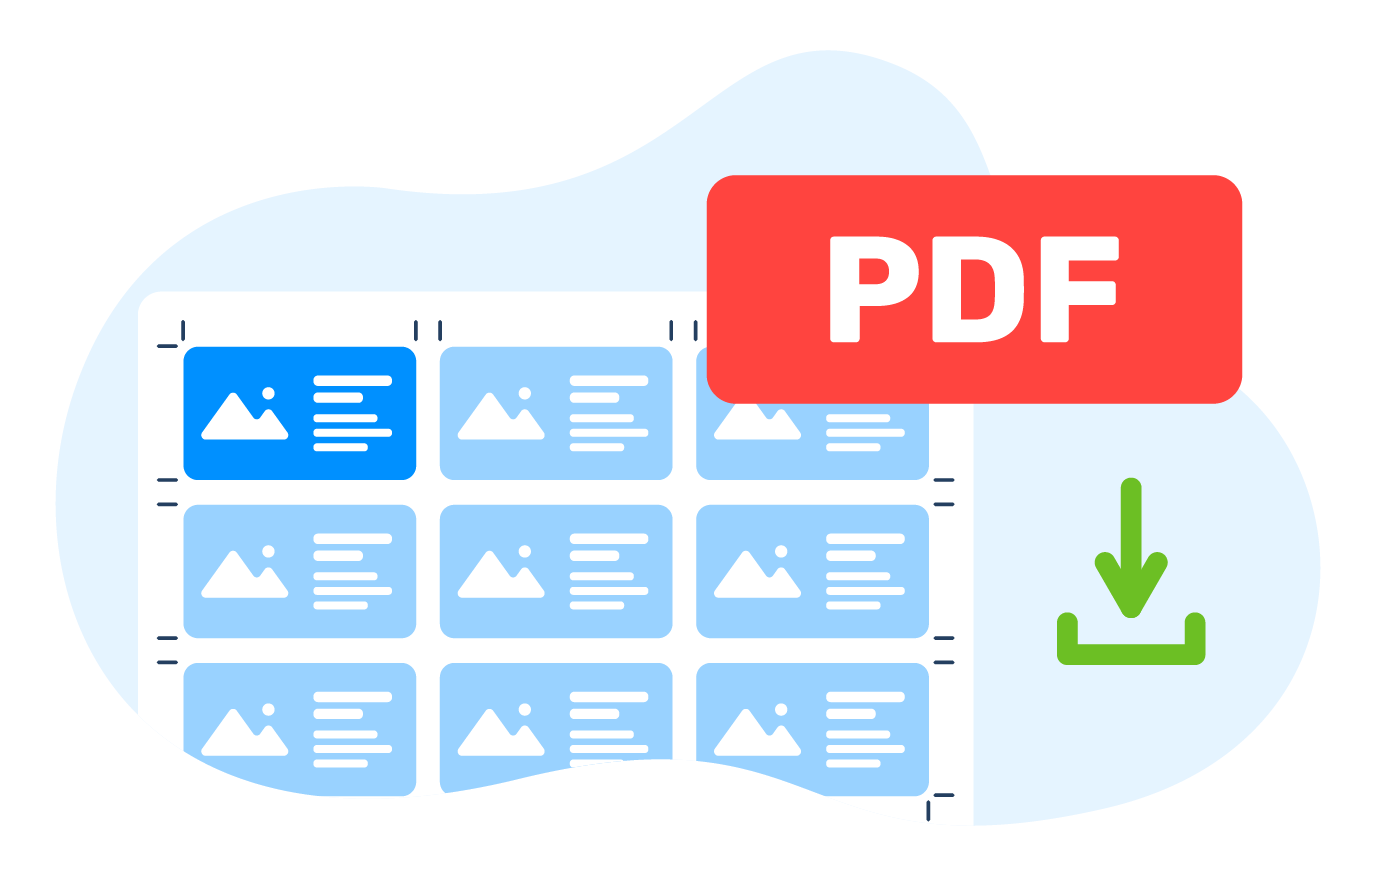 Download a PDF file with the imposed sheet